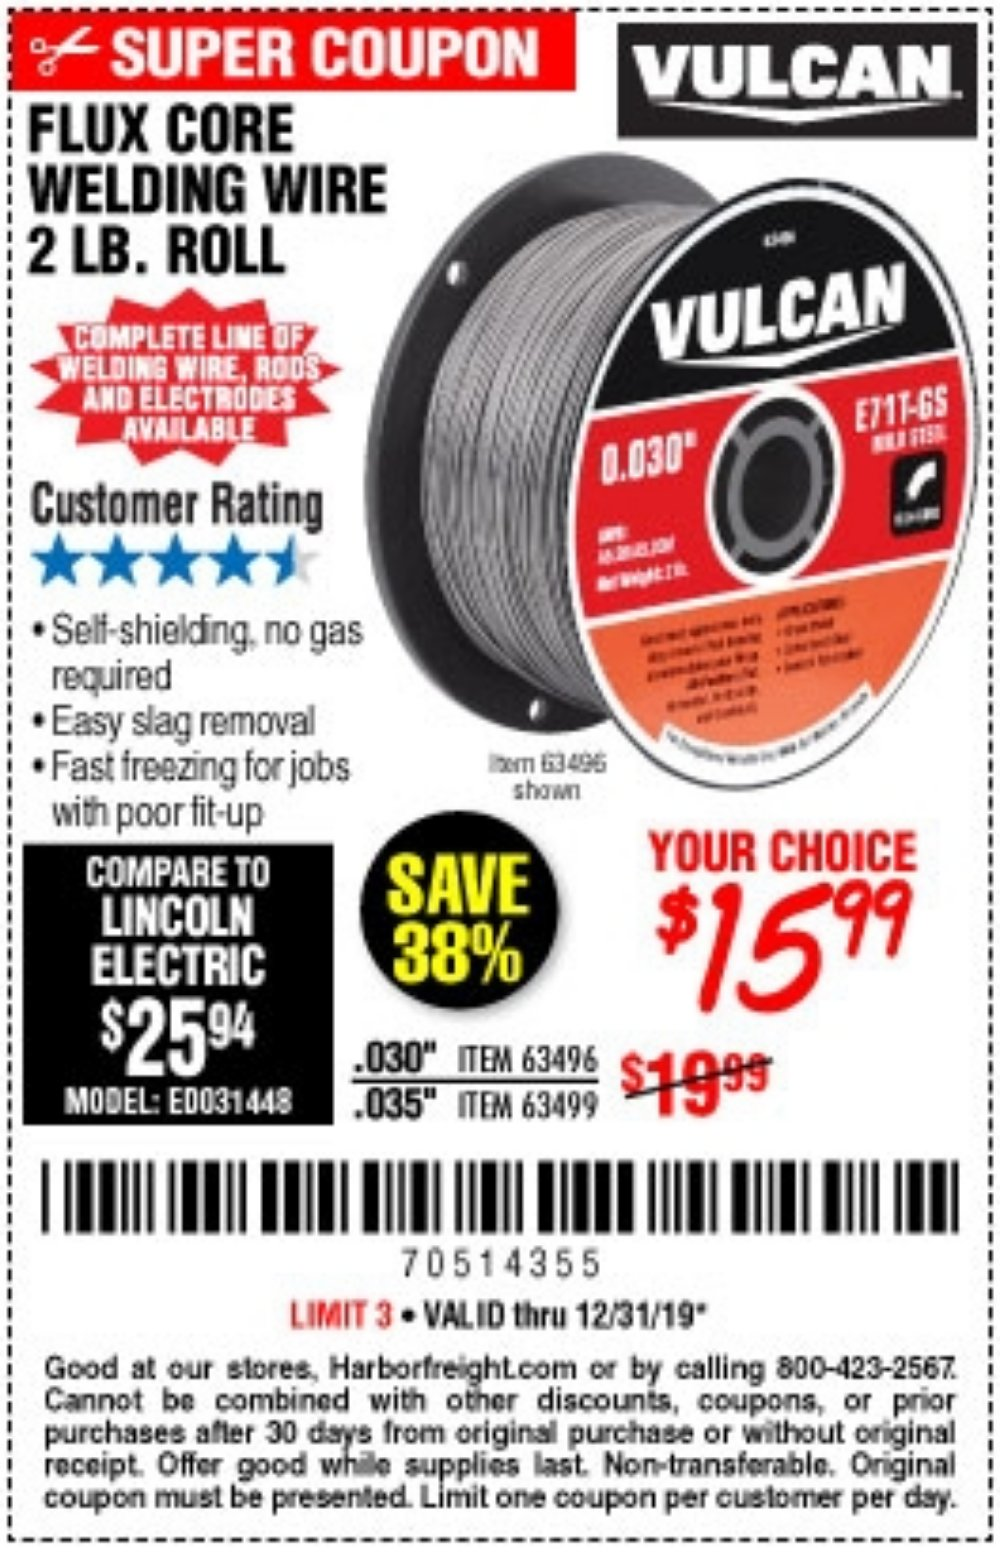 Harbor Freight Coupon, HF Coupons - Flux Core Welding Wire